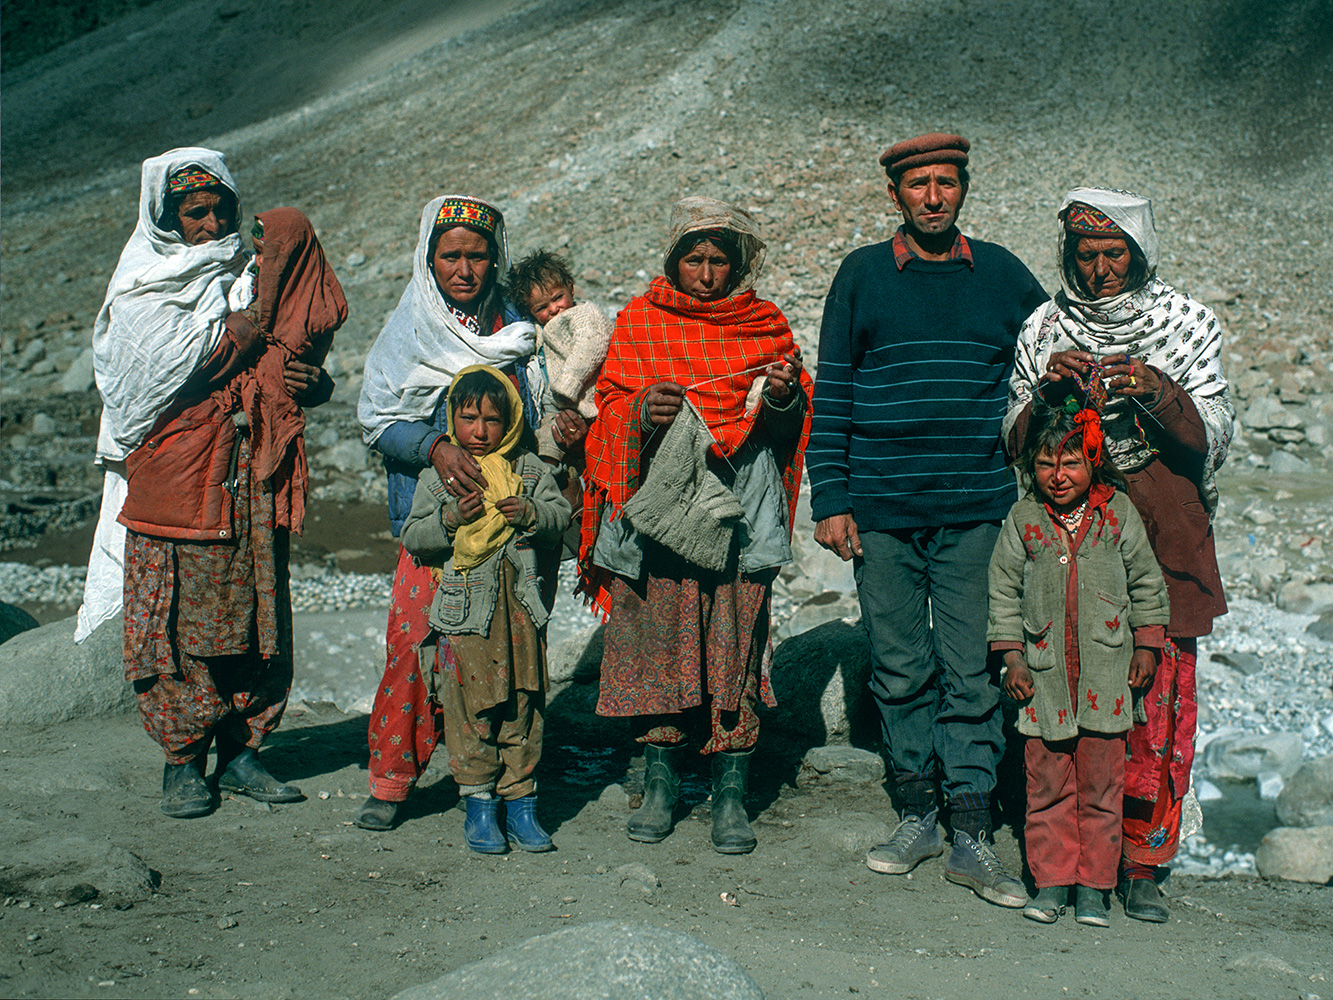 At Shuwert, on the Shimshal Pass